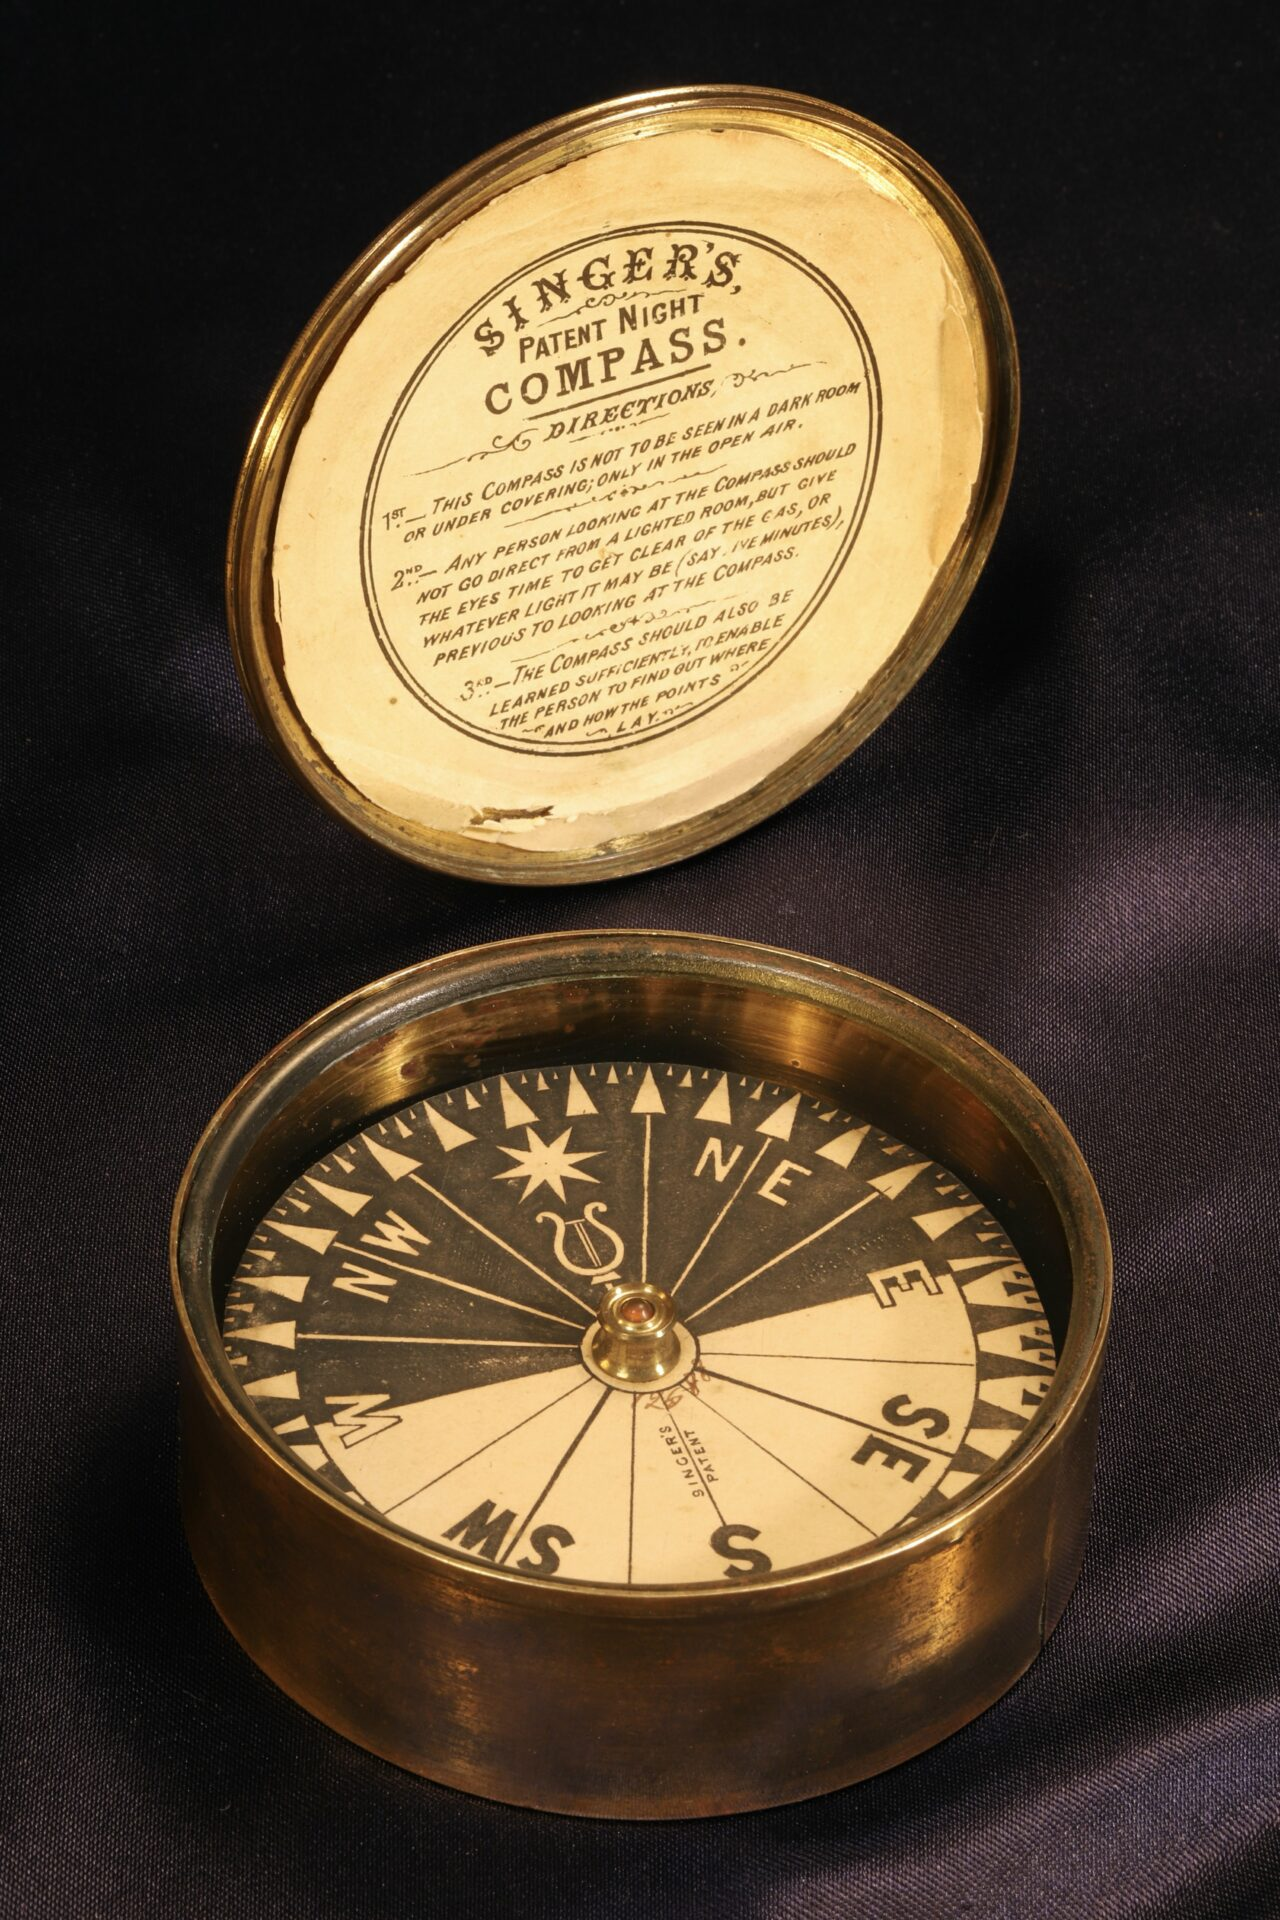 Image of Singers Patent Night Compass No 12588 c1865 showing dial and inside lid with label